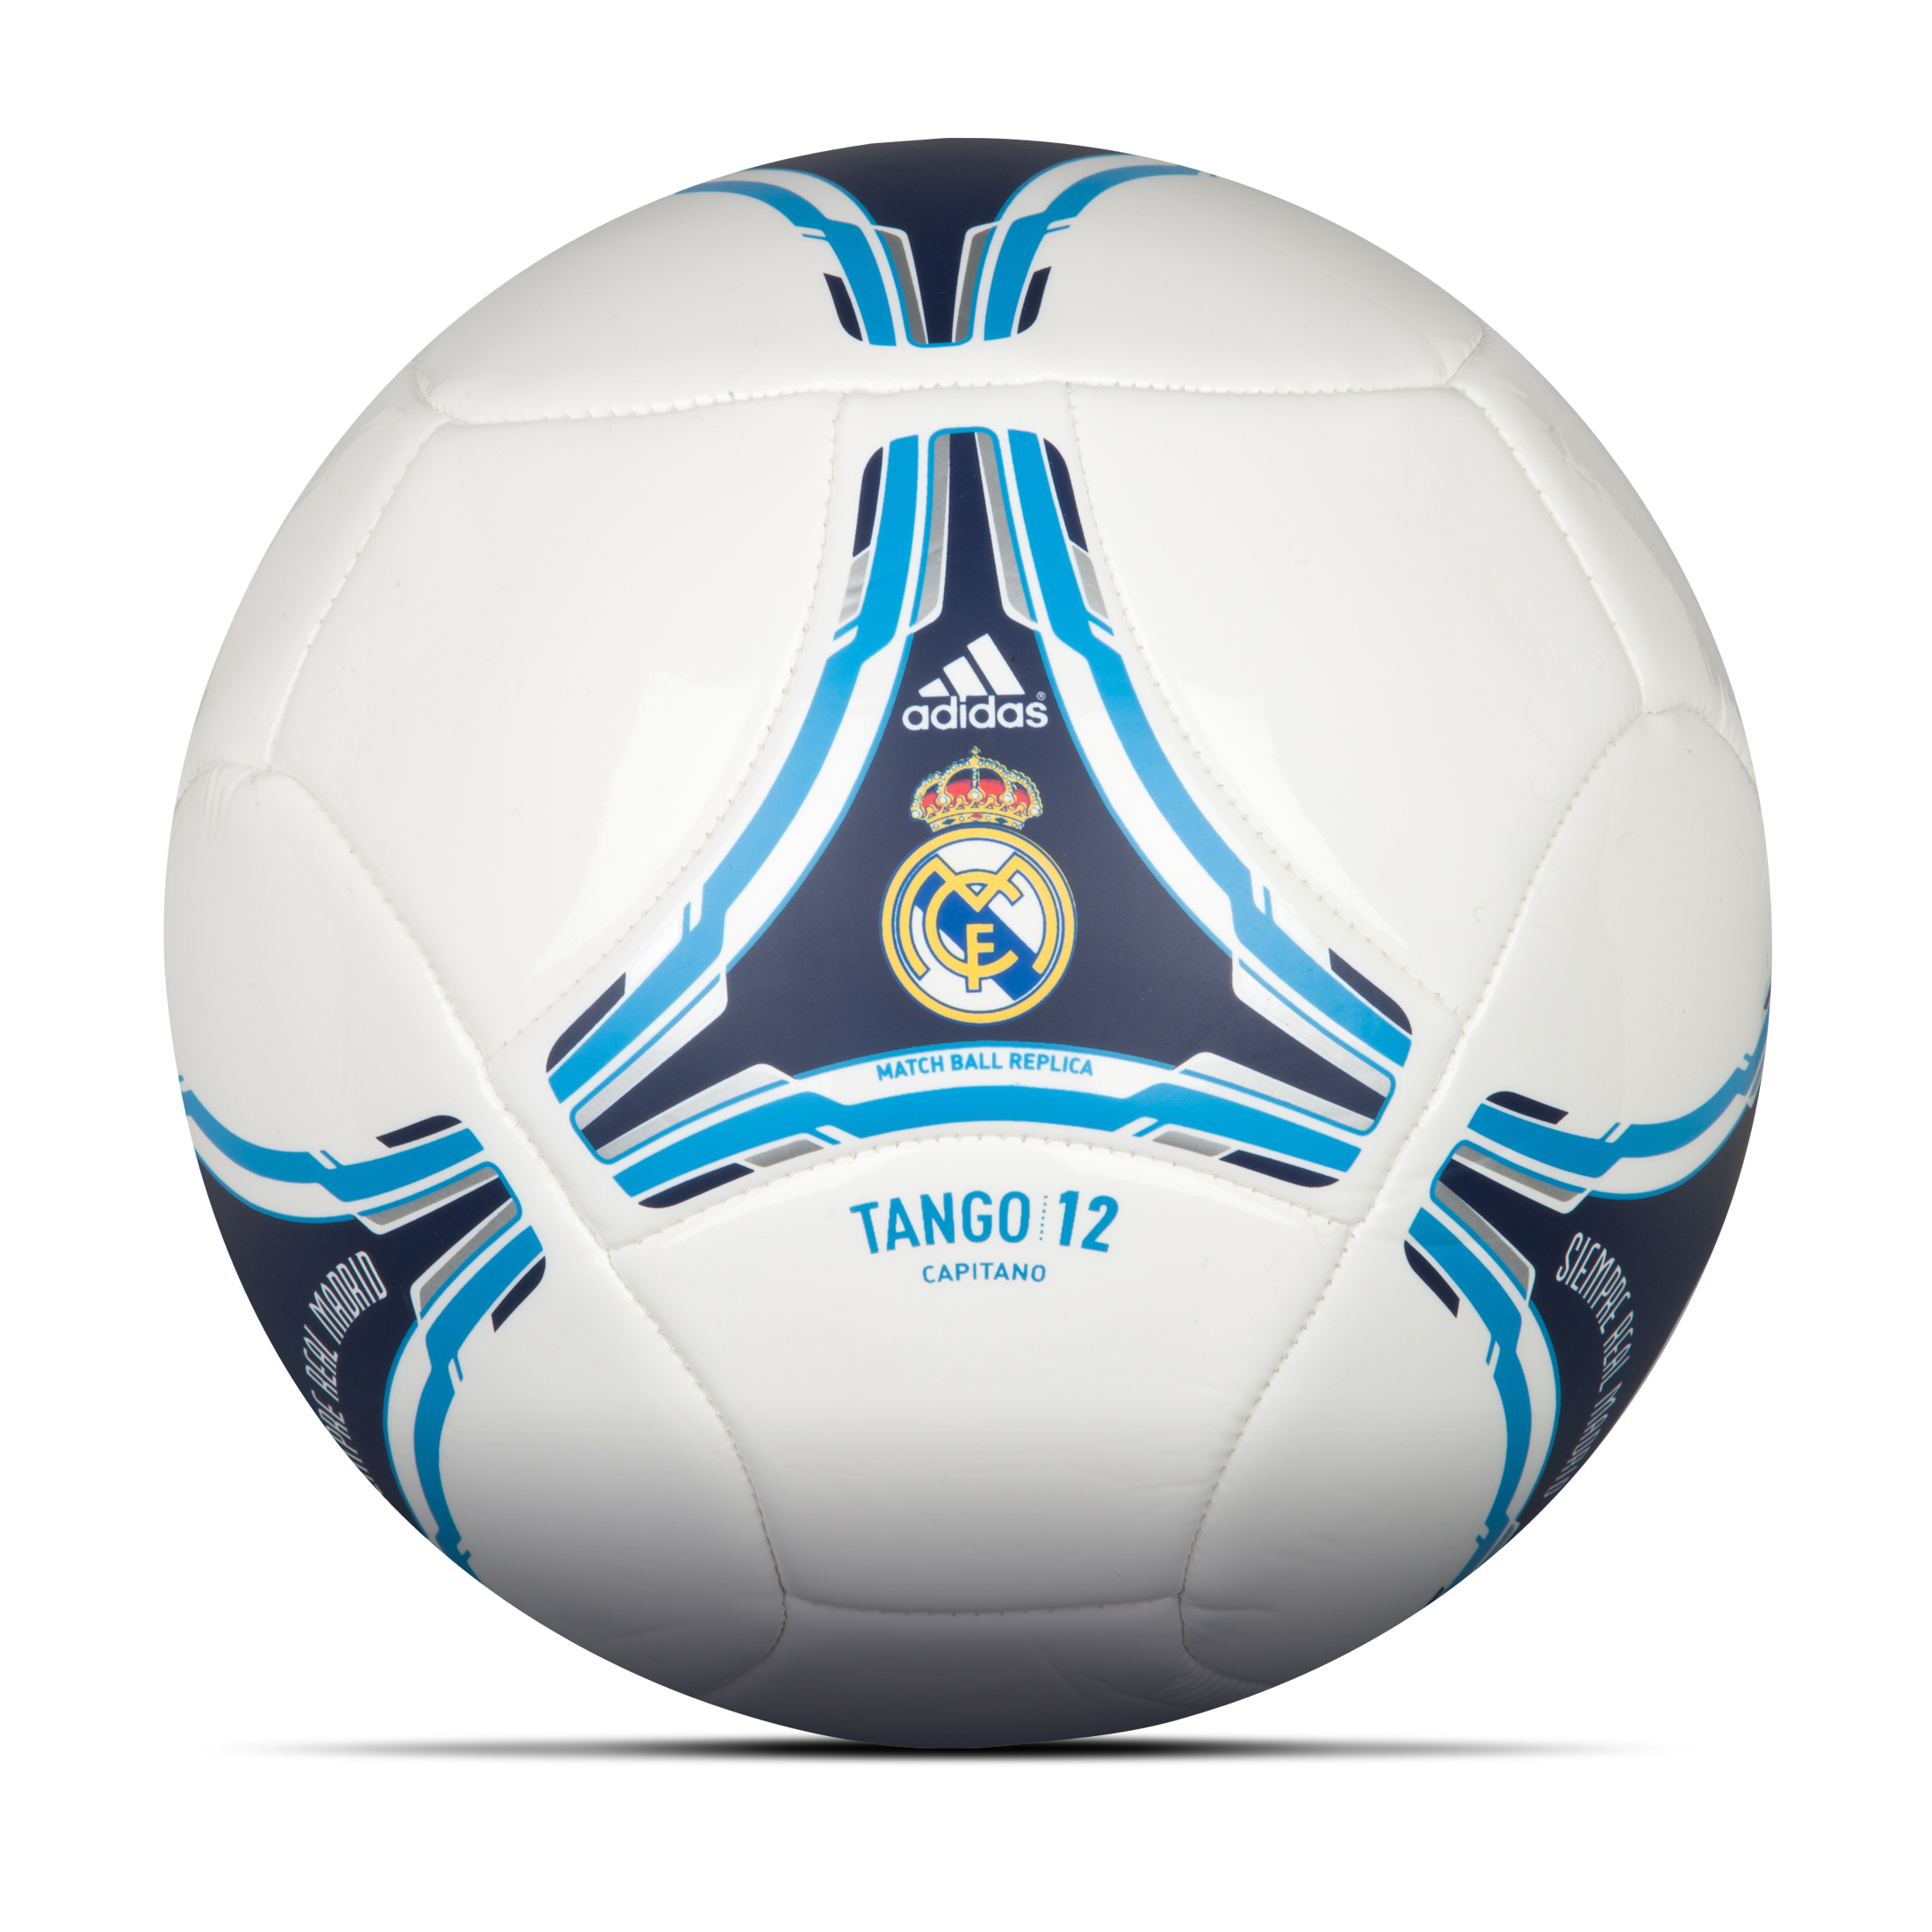 Baln Capitano Real Madrid 2012 adidas - Blanco/negro S10/turquesa